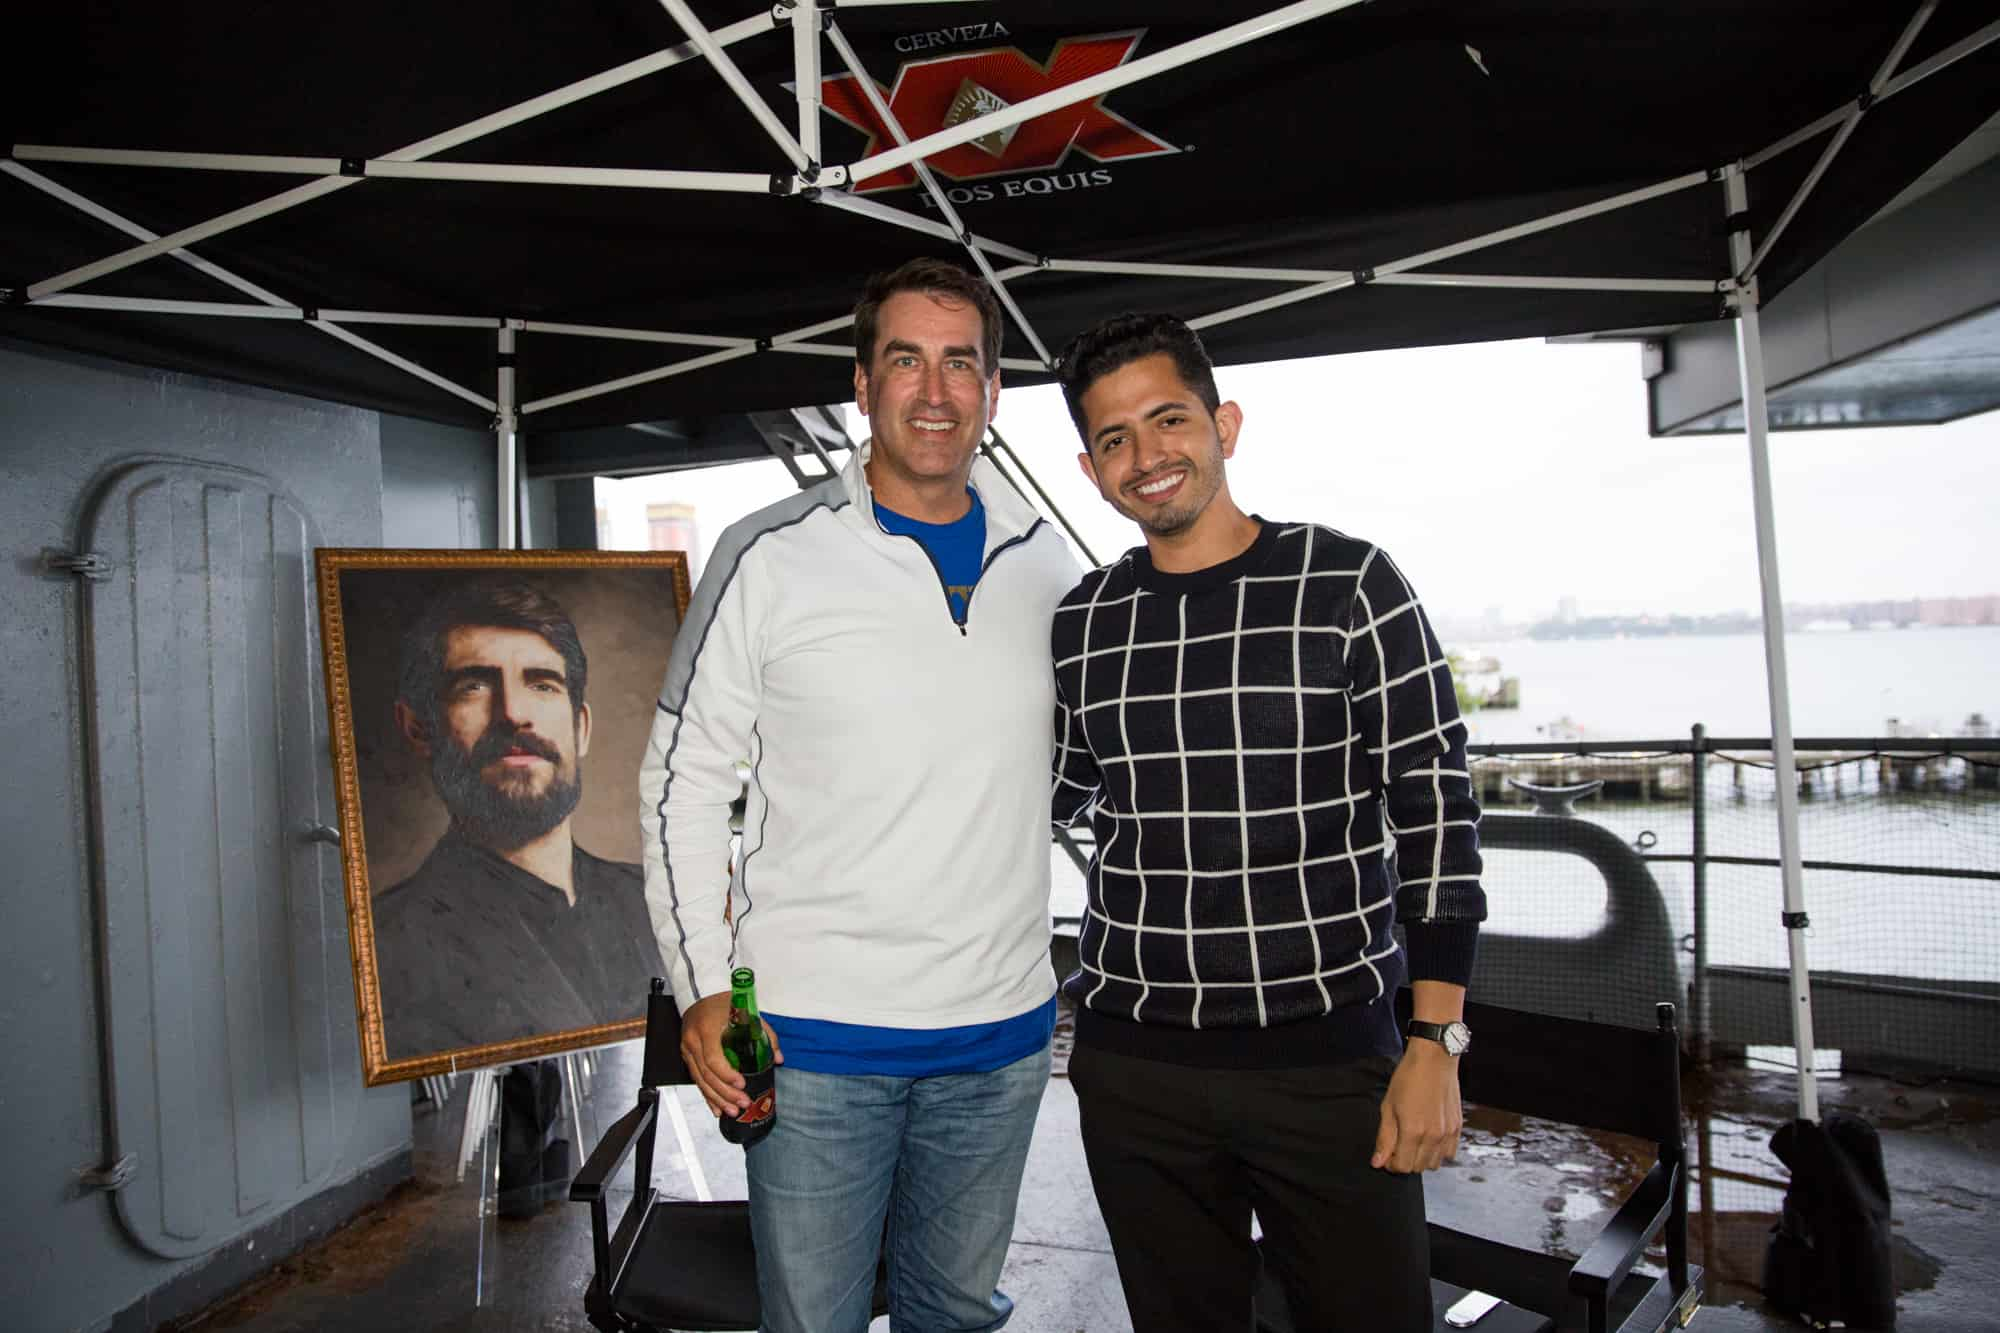 Actor and Comedian Rob Riggle with MAN'edged Media Founder Michael William G.